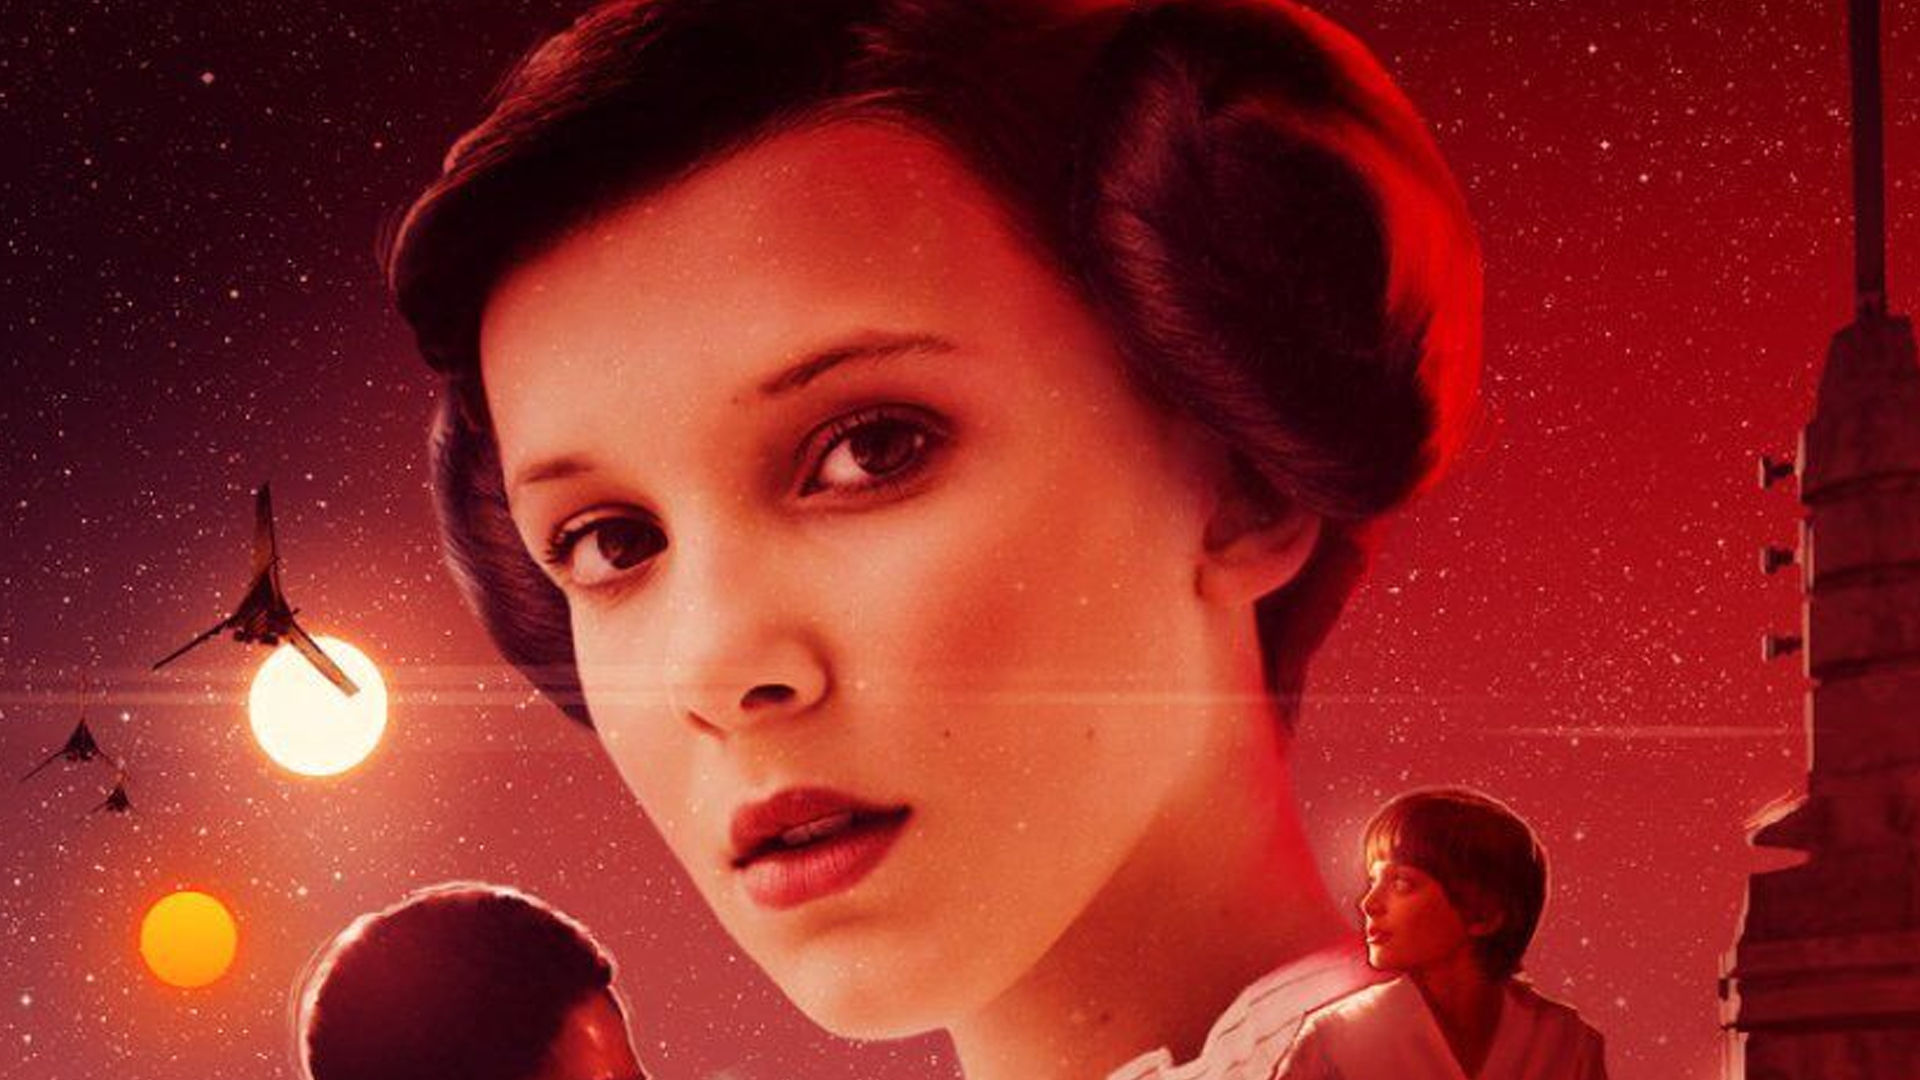 Stranger Things vs Star Wars Cross Over Banner - Michael Maher